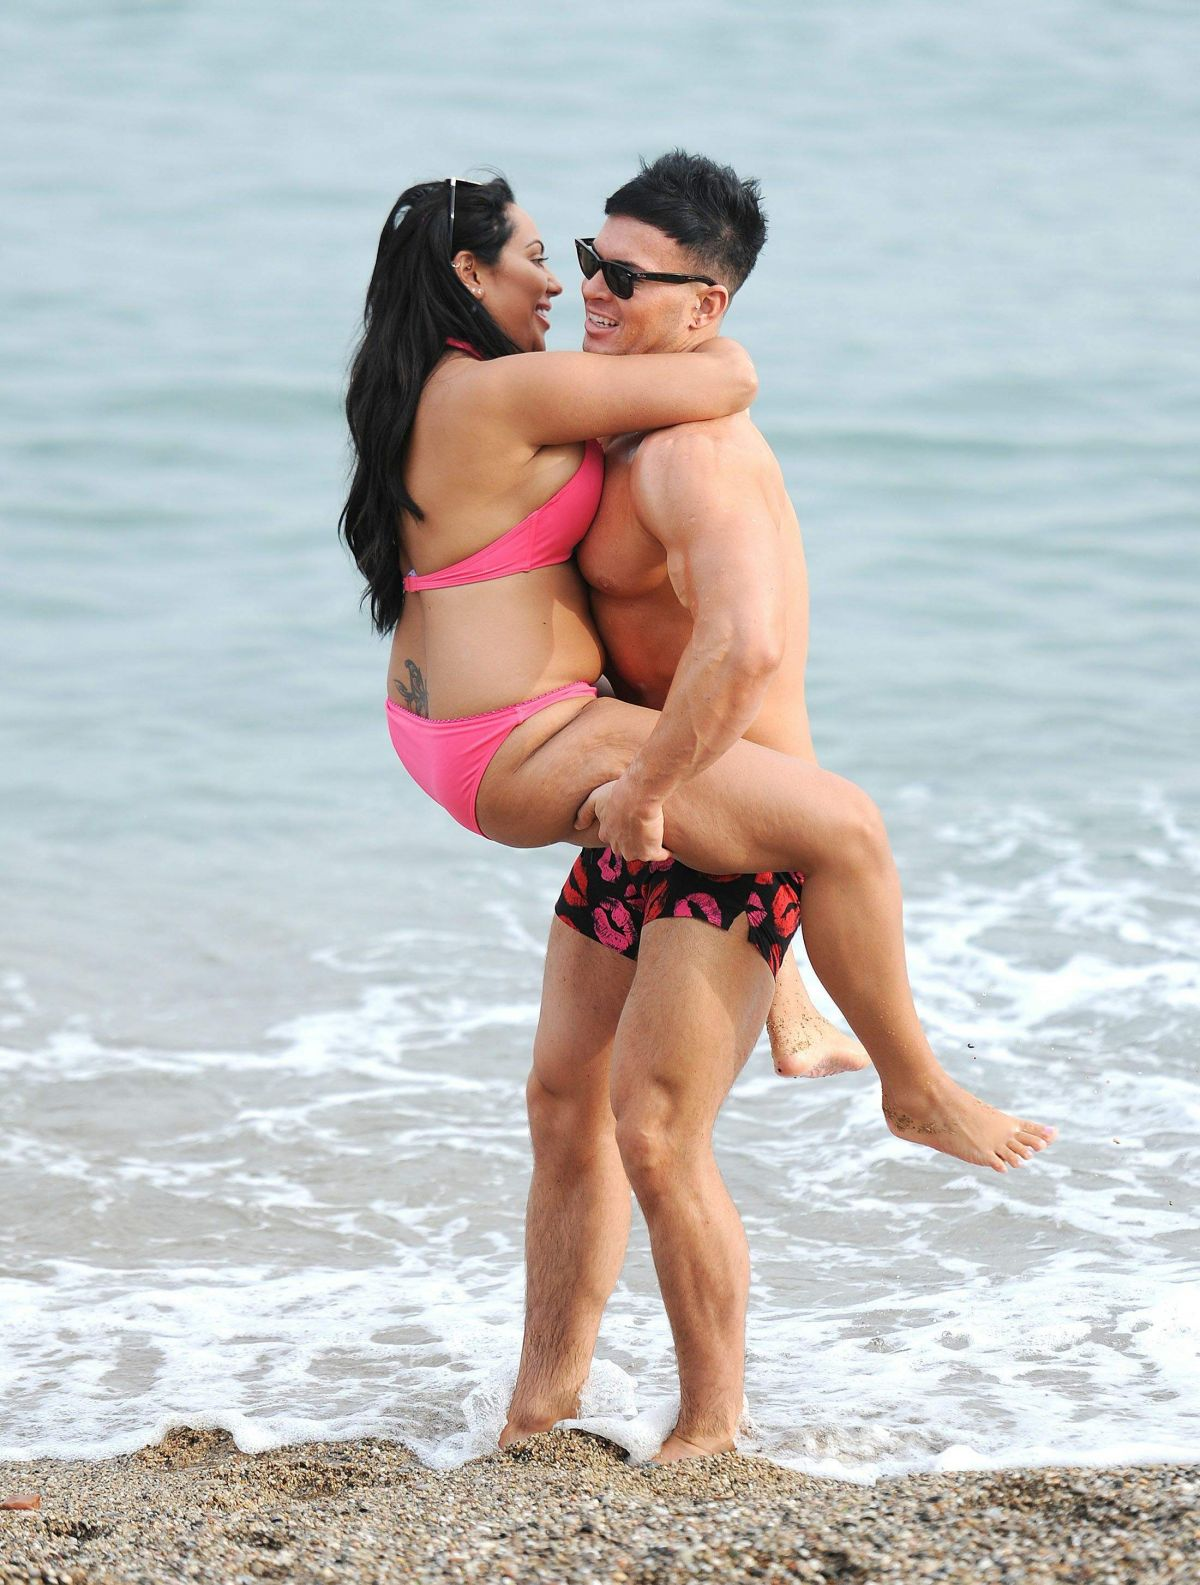 Sophie Kasaei in Pink Bikini on the beach in Lanzarote Pic 21 of 35